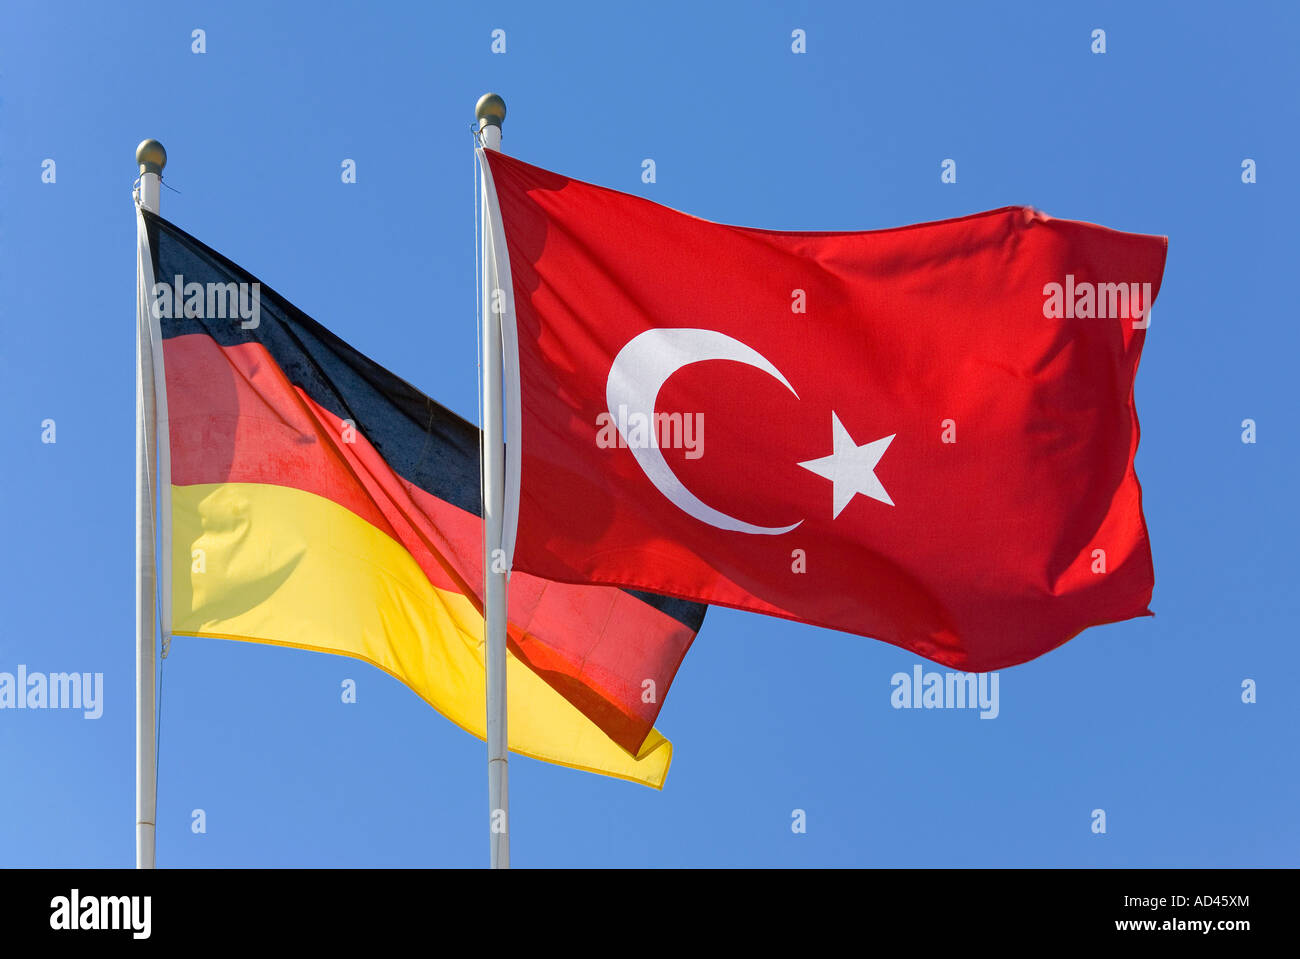 A Turkish and a German flag - Stock Image